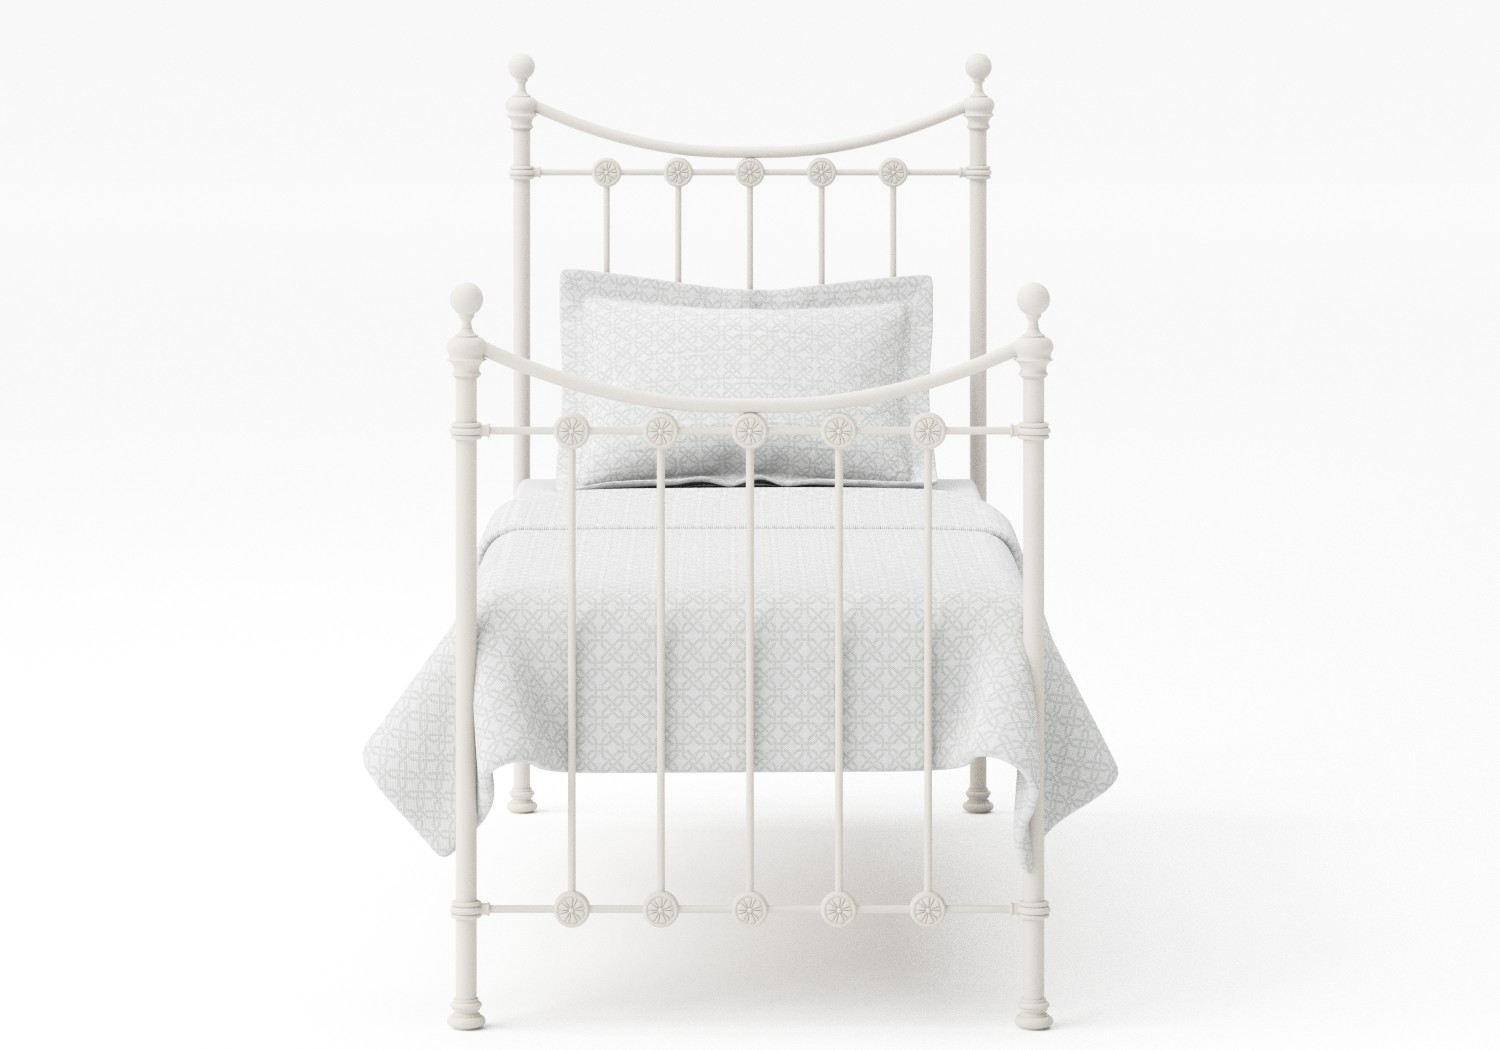 Carrick Single Iron/Metal Bed in Glossy Ivory with ivory painted details